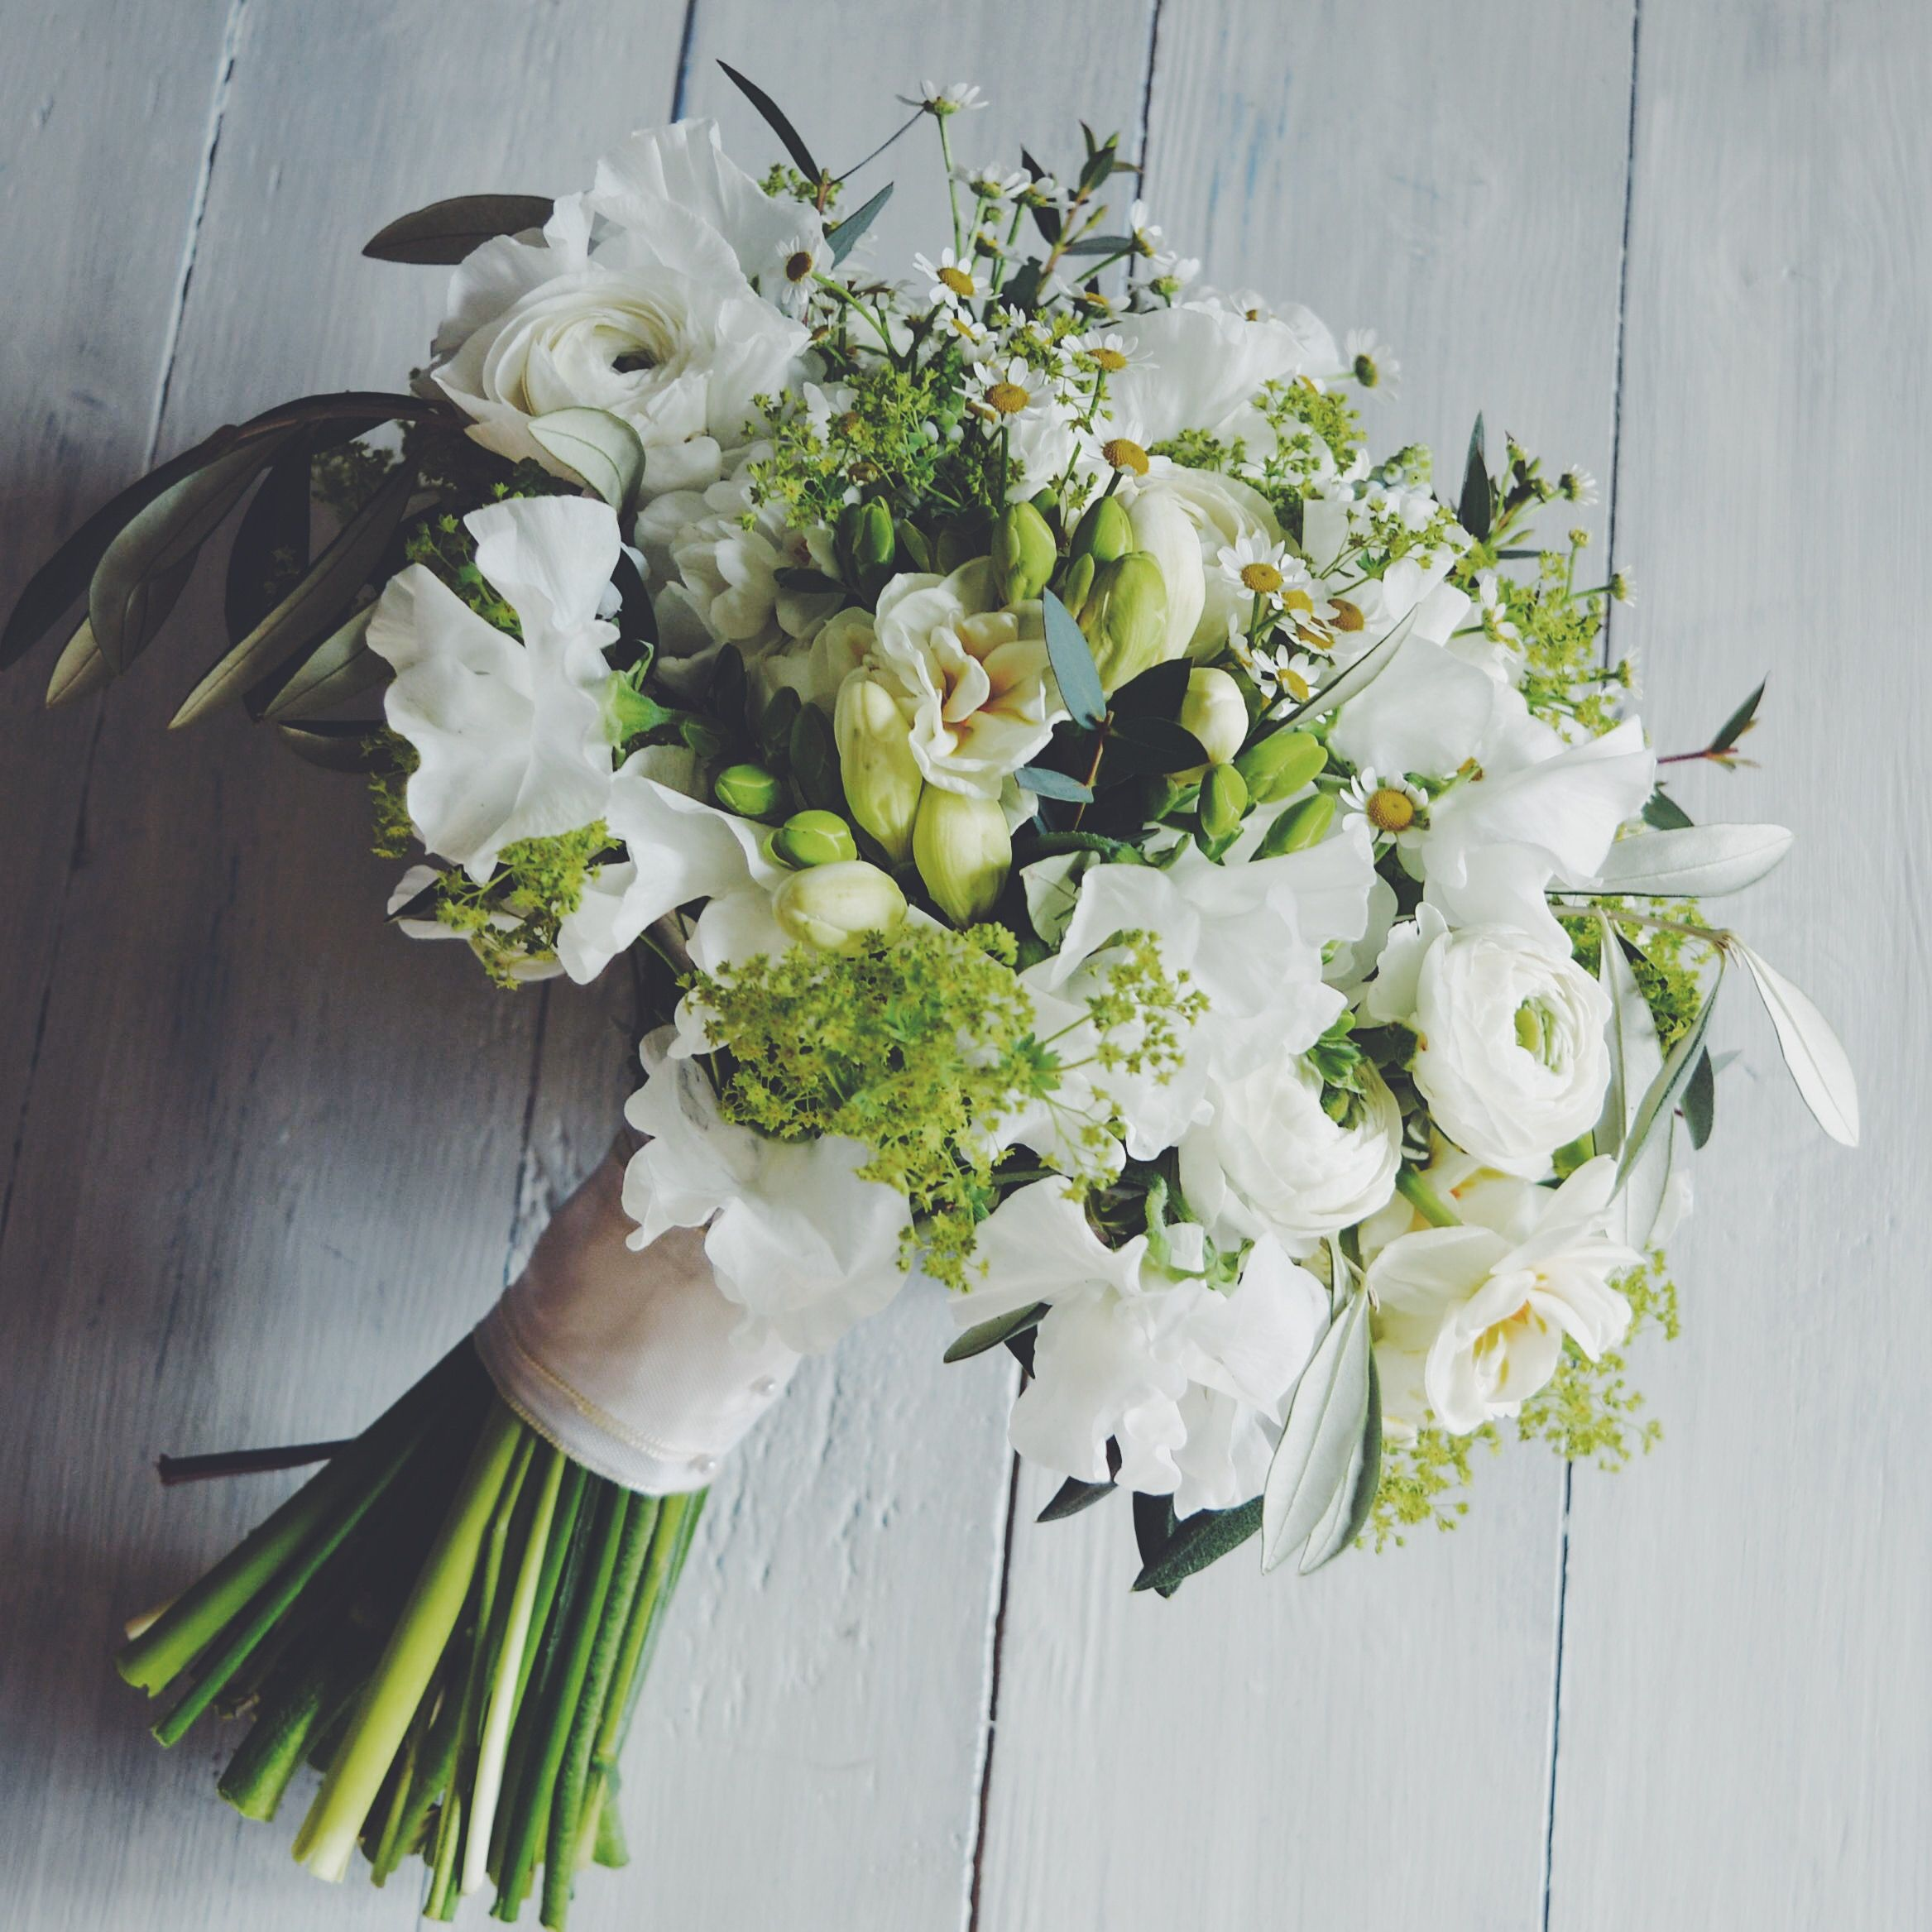 Hand tied spring bridal bouquets in whites created by eden blooms